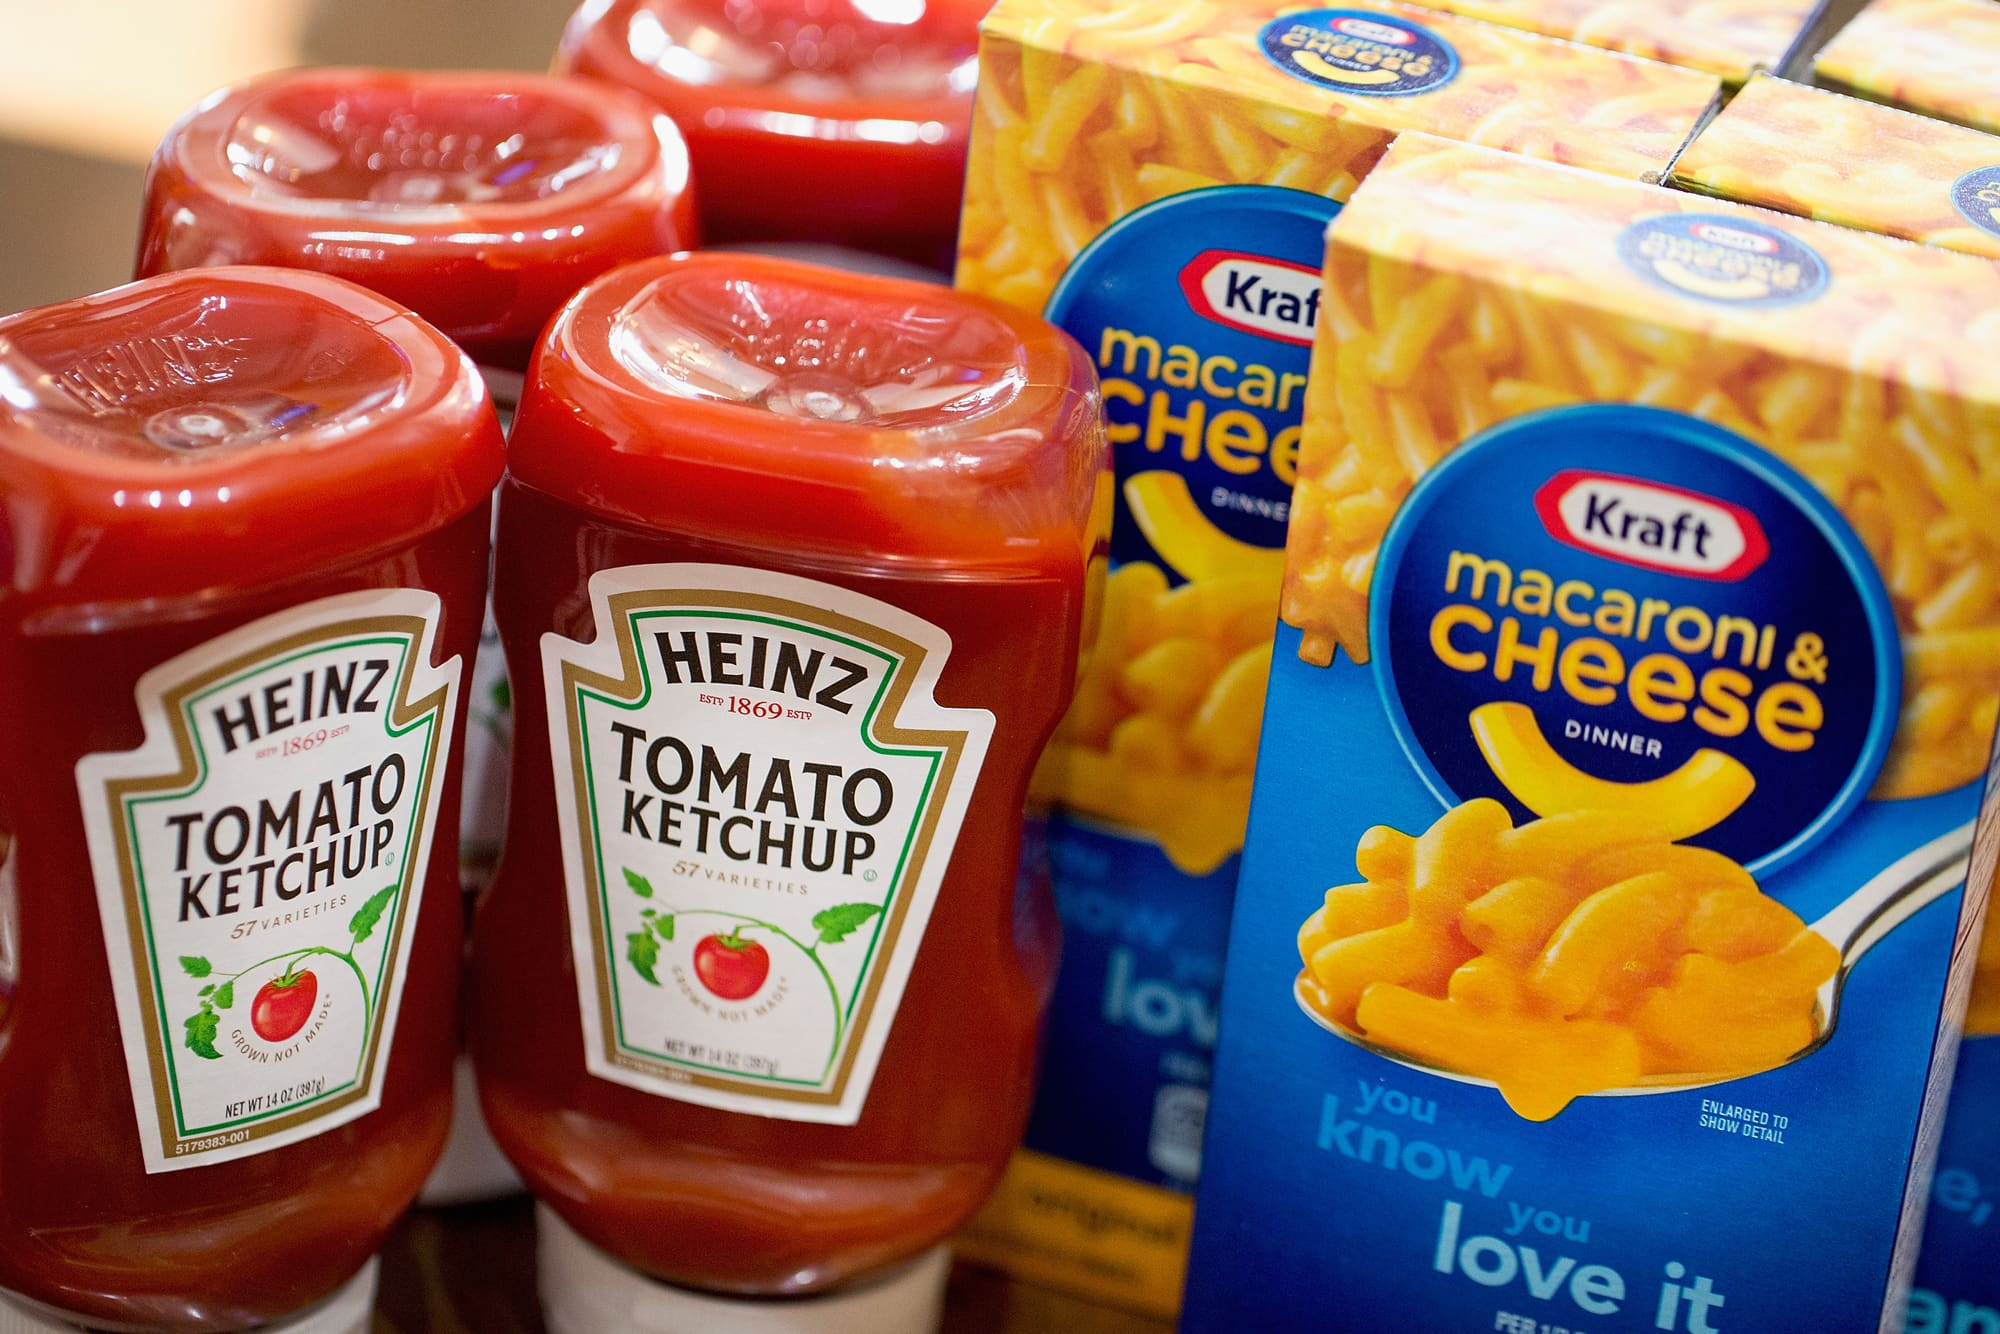 Could Warren Buffett be wrong? Kraft Heinz is Exhibit A for iconic Big Food brands at risk of losing global relevance